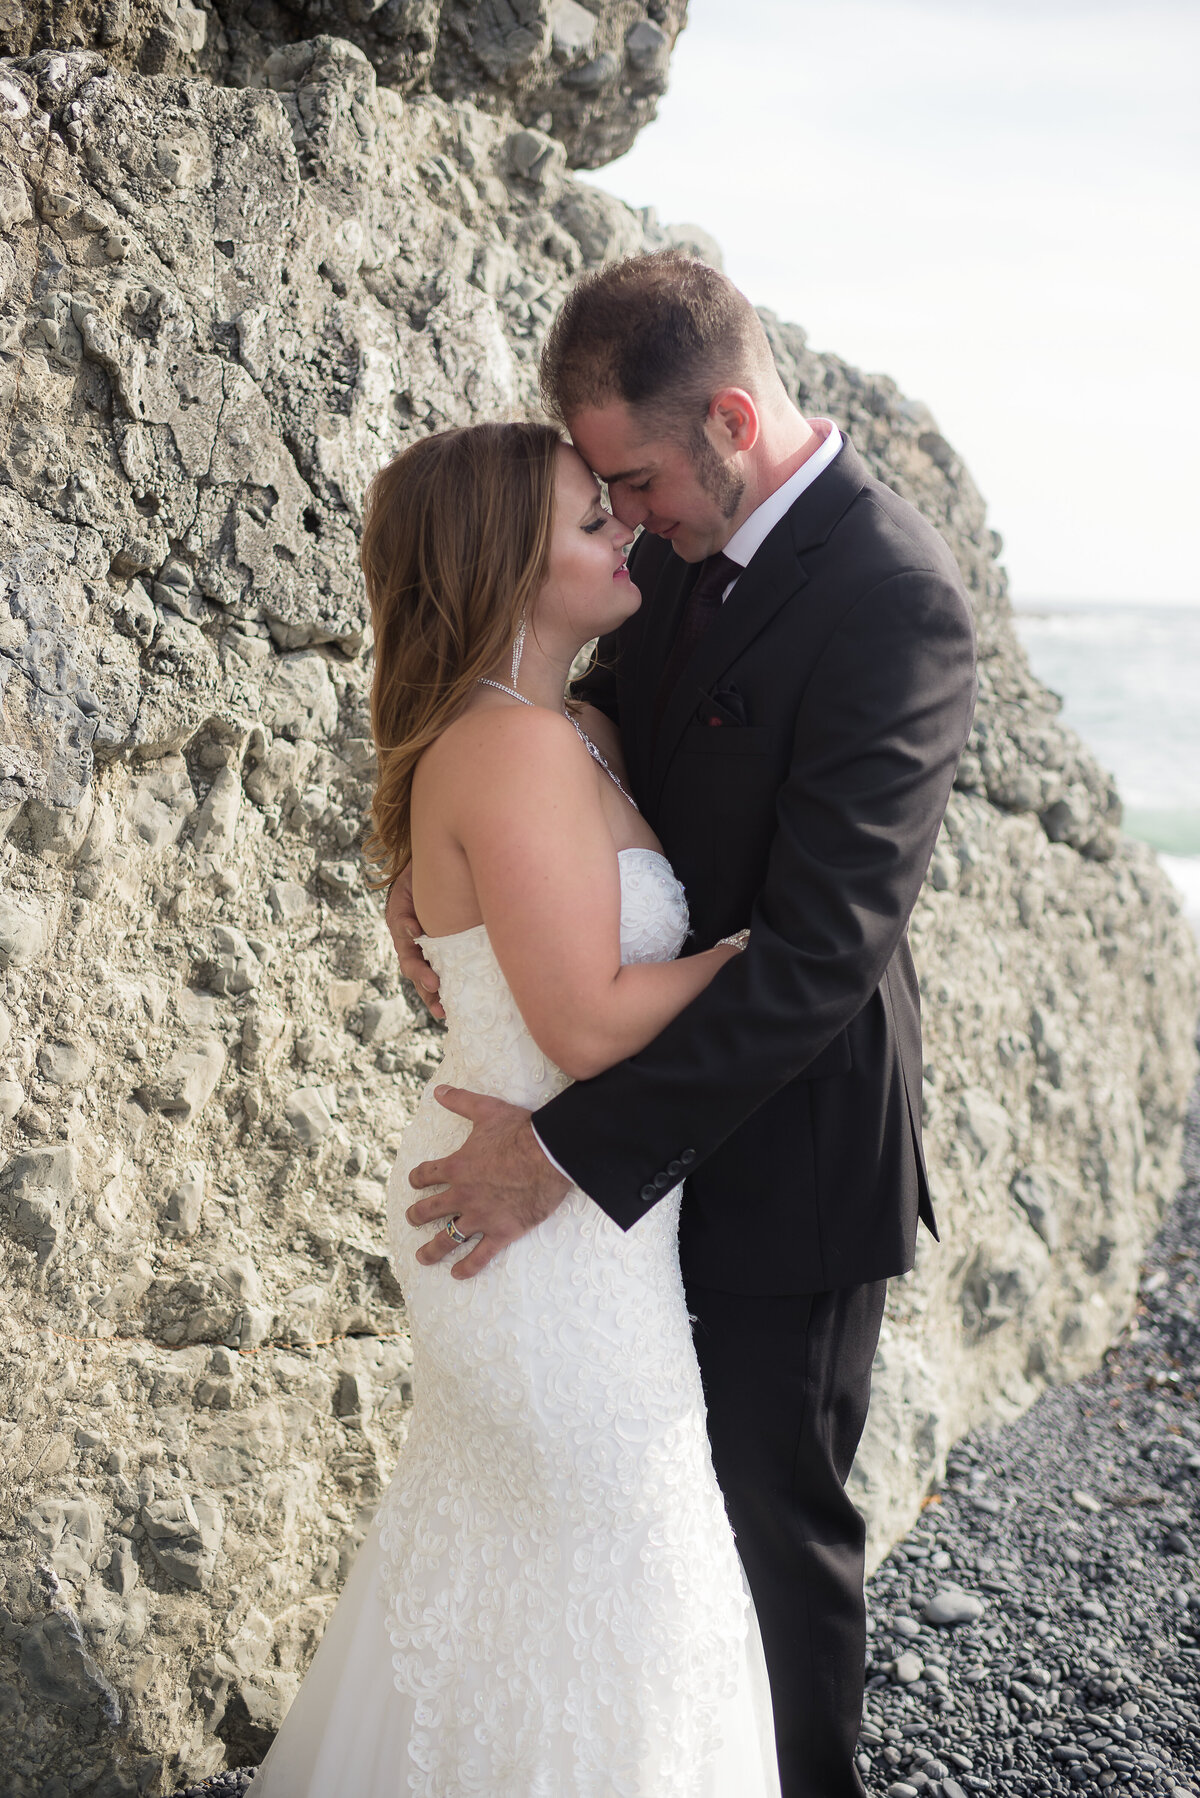 Shelter-Cove-Black-Sannds-Beach-photographer-adventure-elopement-intimate-destination-wedding-nor-cal-beach-elopement-13